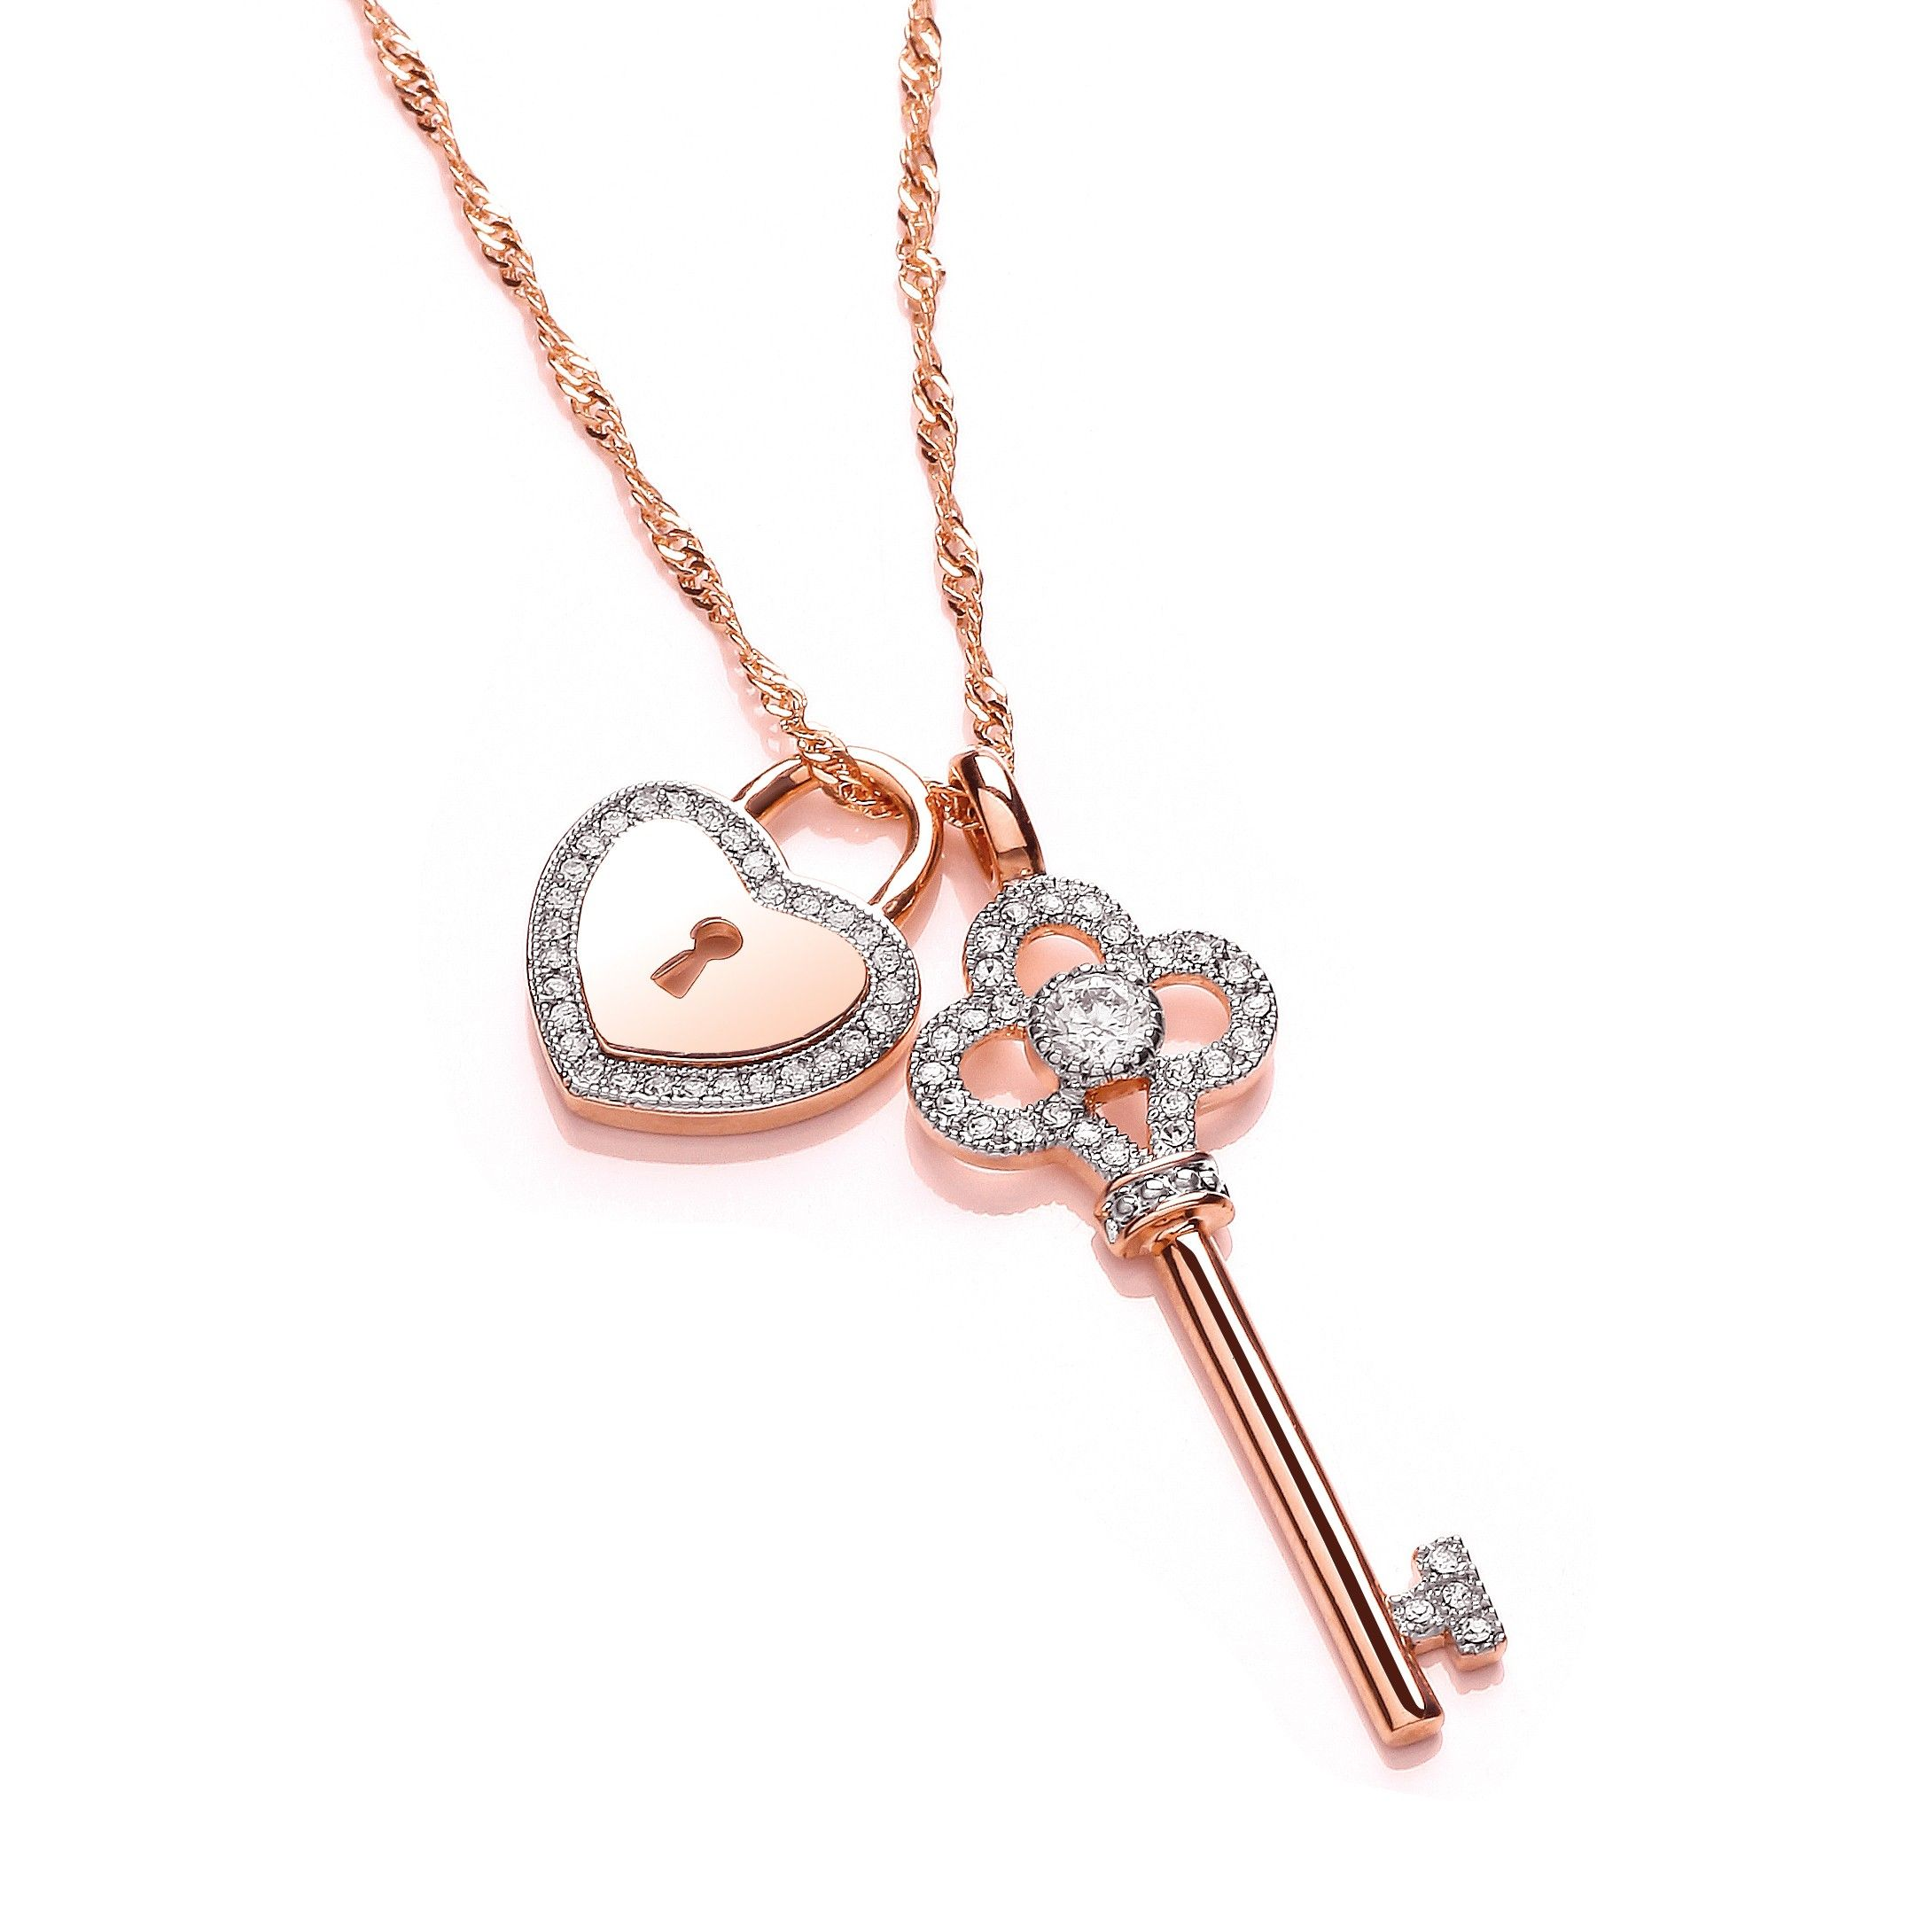 fpx shop fashion jewelry heart main pendant necklace pave michael pav product image lock kors